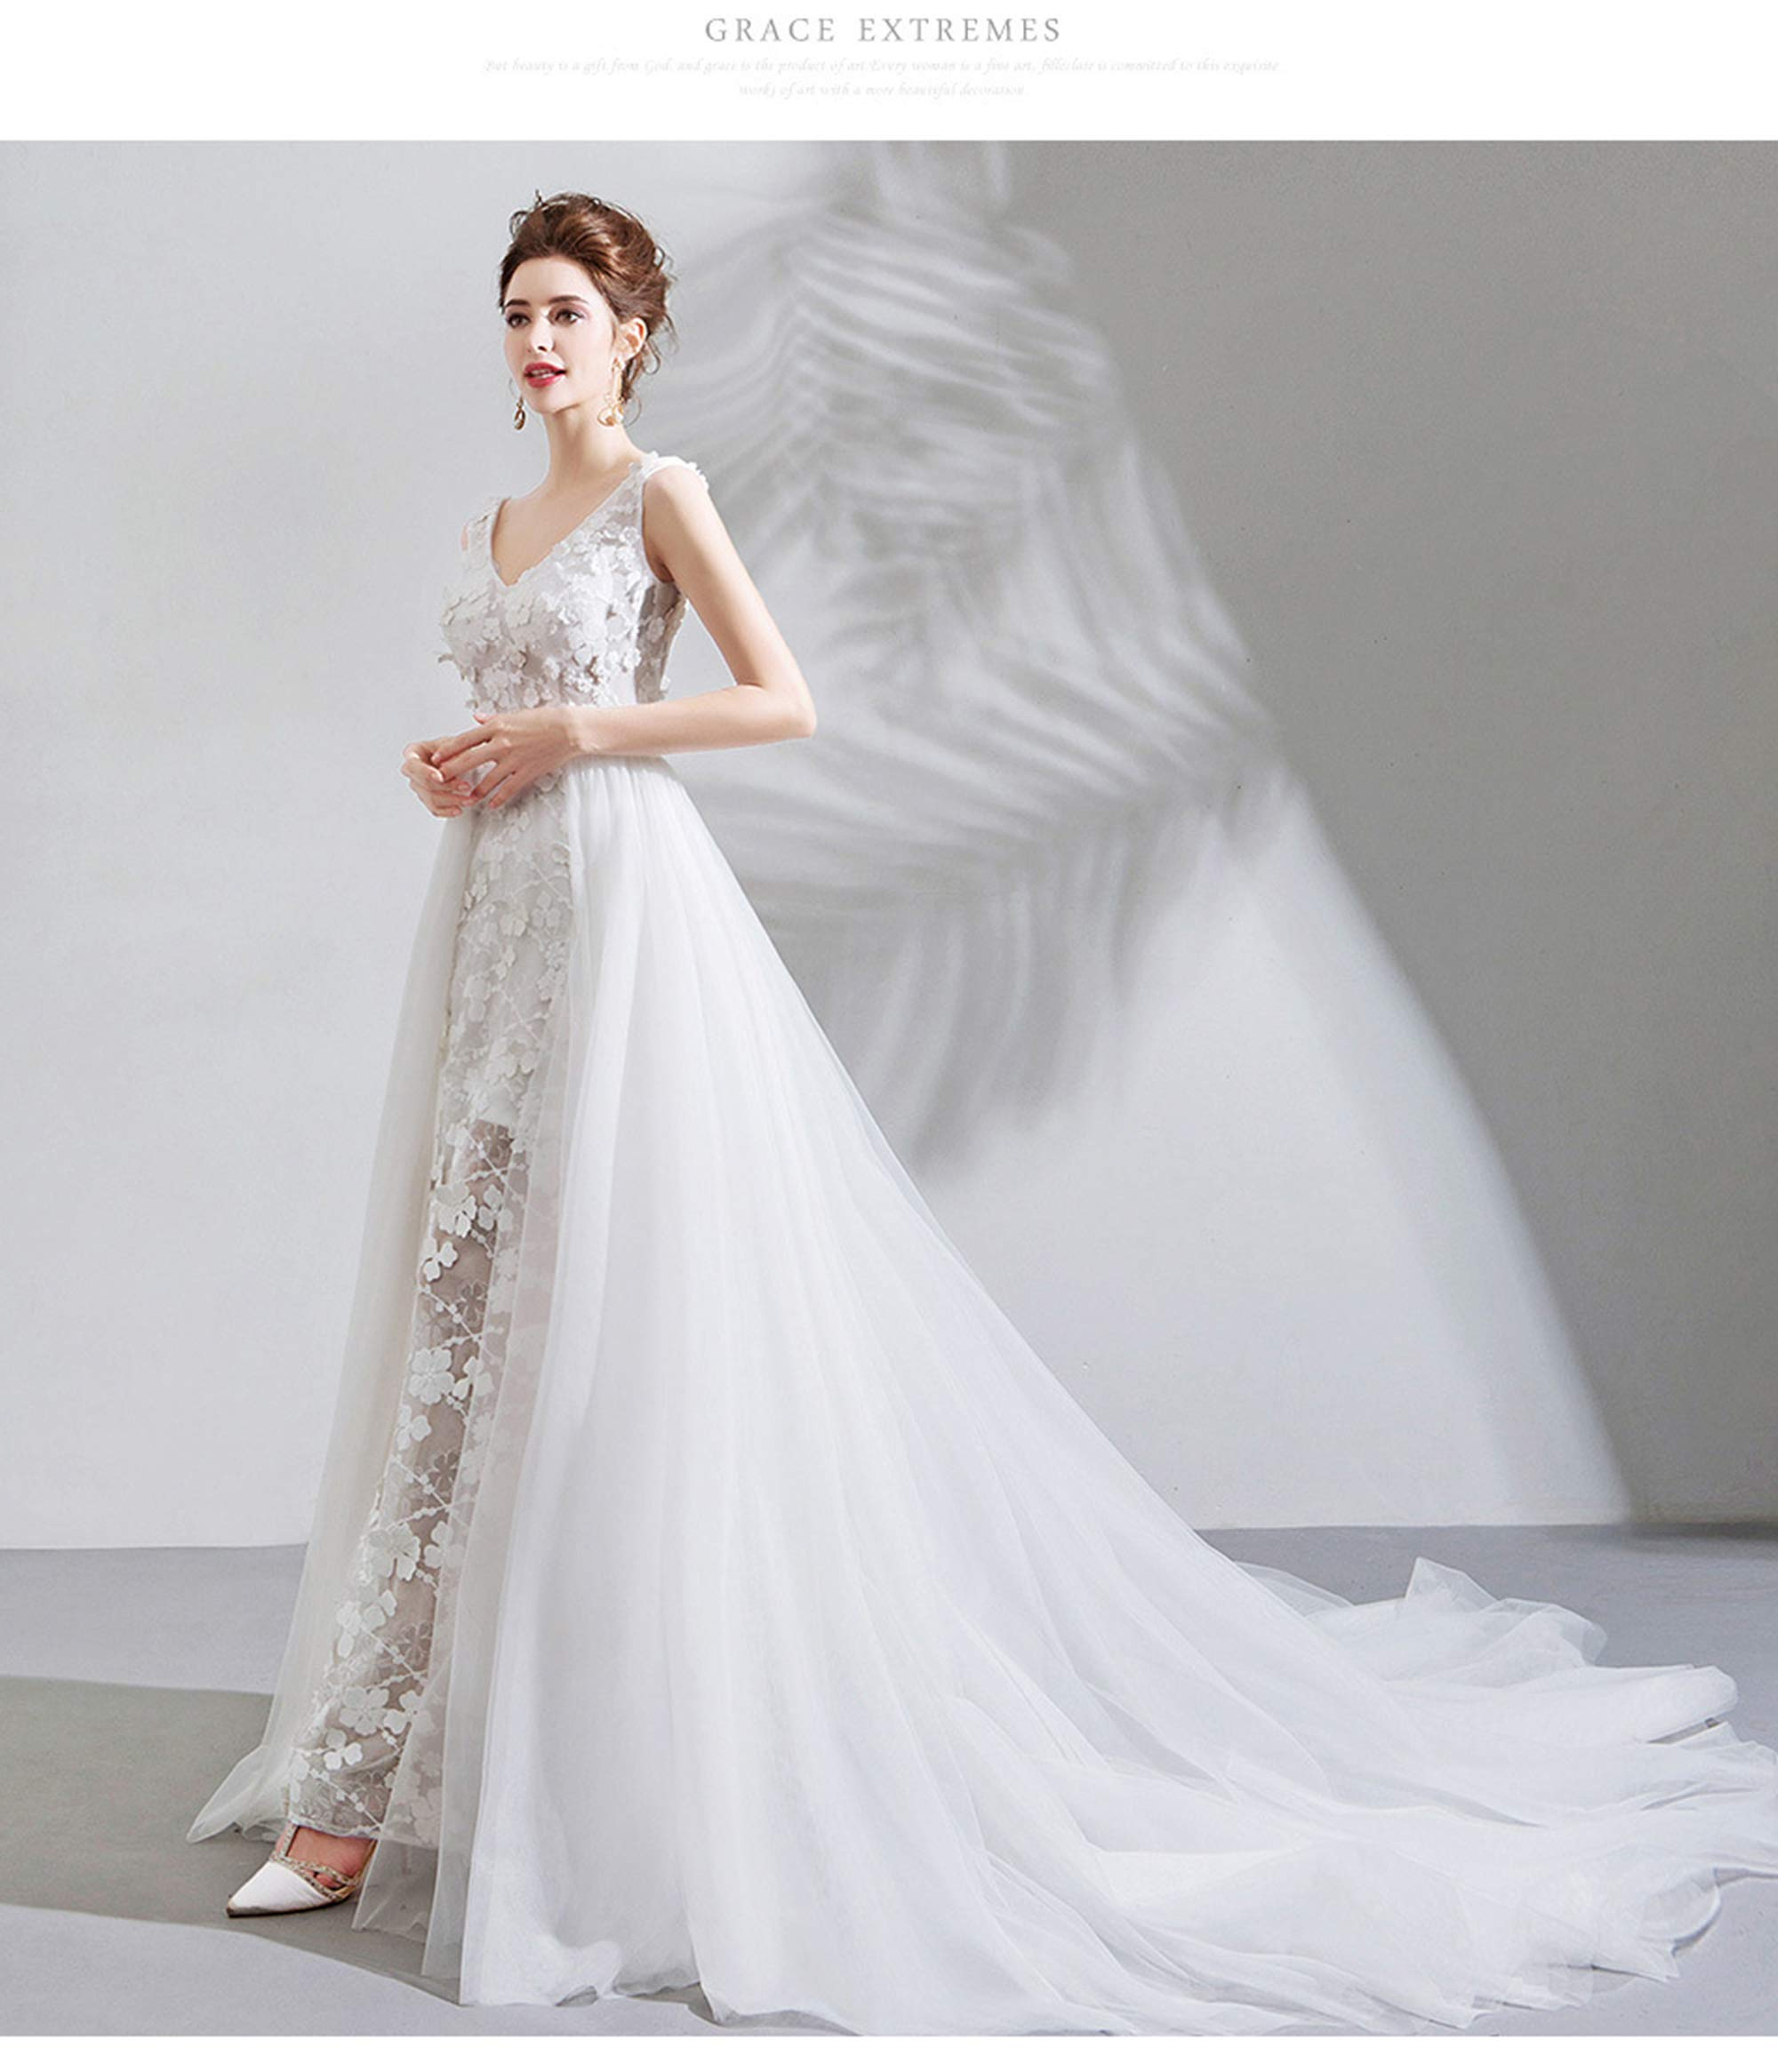 NOMSOCR Women's Lace V Neck Sleeveless Wedding Dresses Mermaid Bridal Gown (M, White) by NOMSOCR (Image #4)